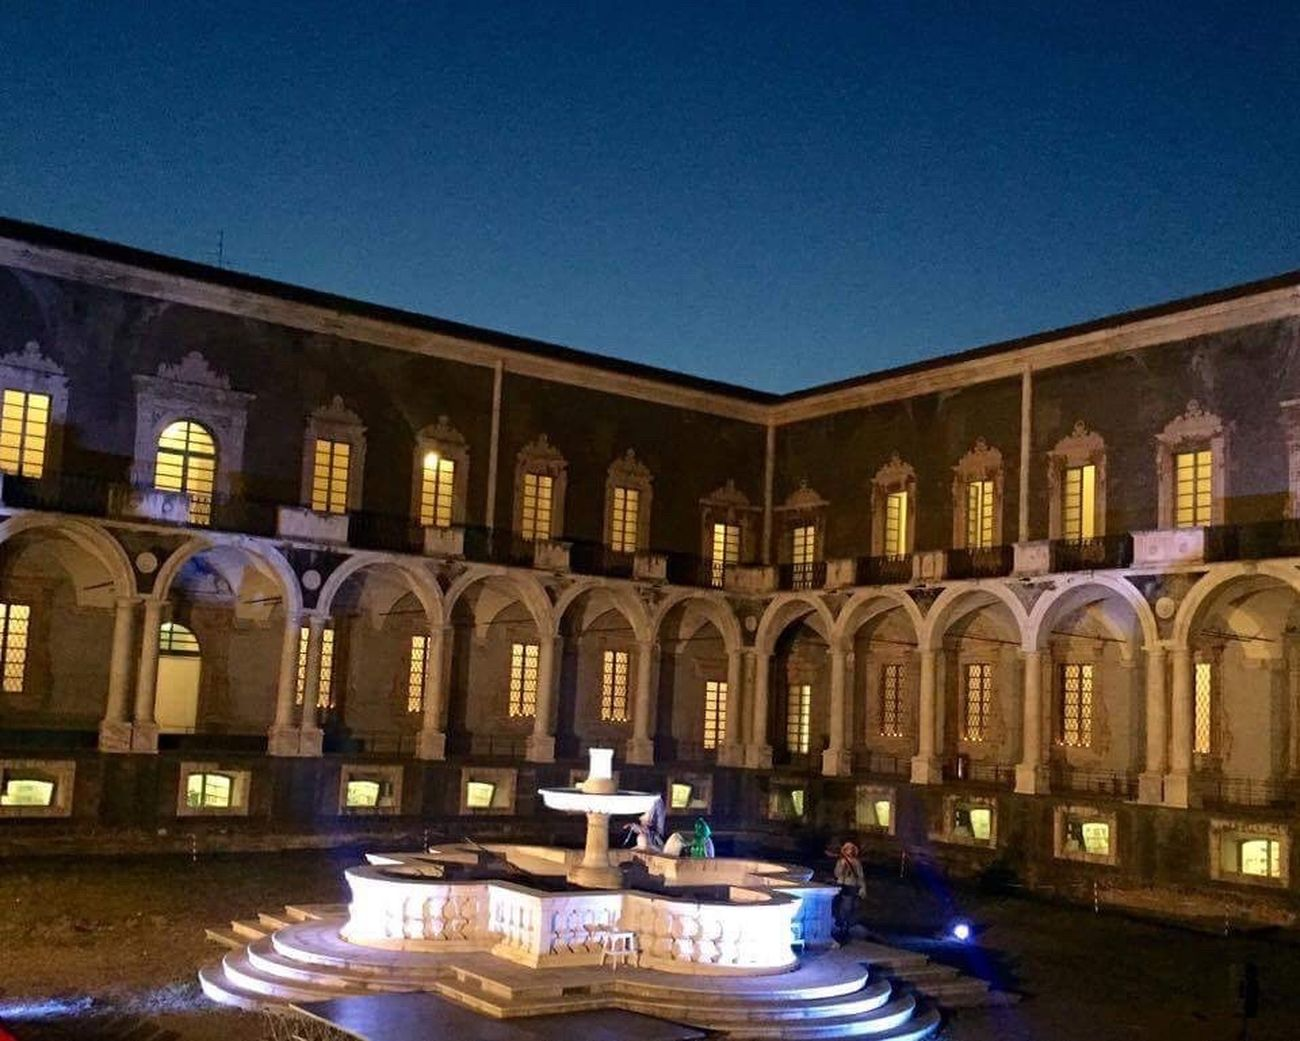 Night Clear Sky Architecture Built Structure Outdoors Building Exterior Illuminated No People Nightshot Night Lights Nightphotography Eyeem Photography Spirituality Low Angle View Colonnade Architectural Column Ancient Monastery Cloister Arch Windows The Architect - 2017 EyeEm Awards Mycity Catania, Sicily